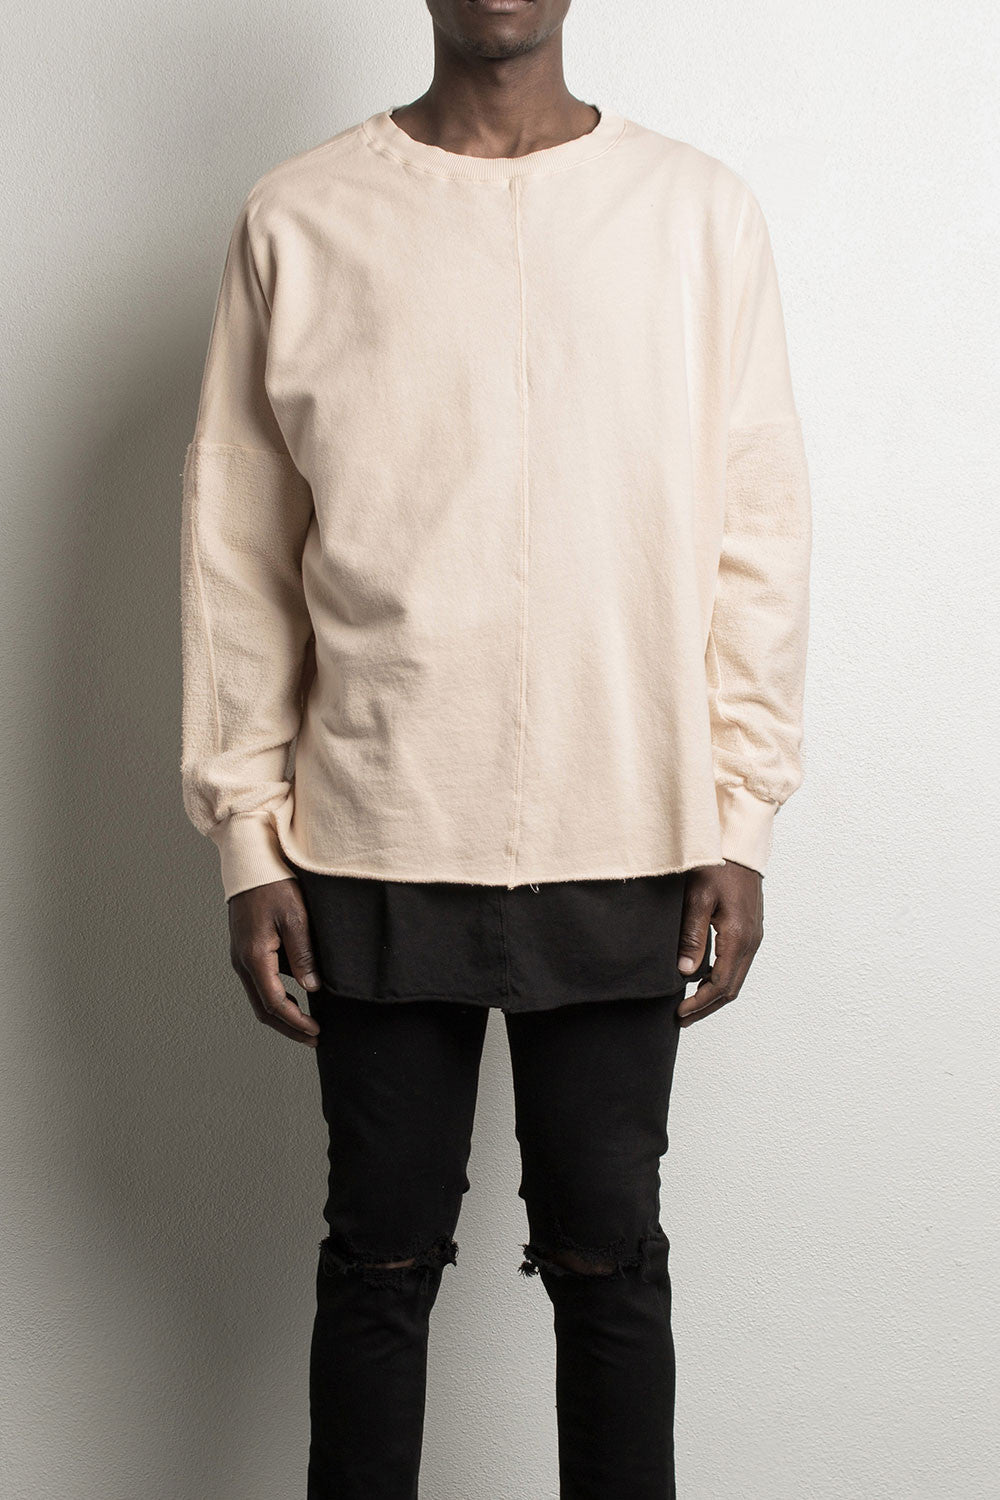 daniel patrick - oversized hero sweat - COMMON  - 1